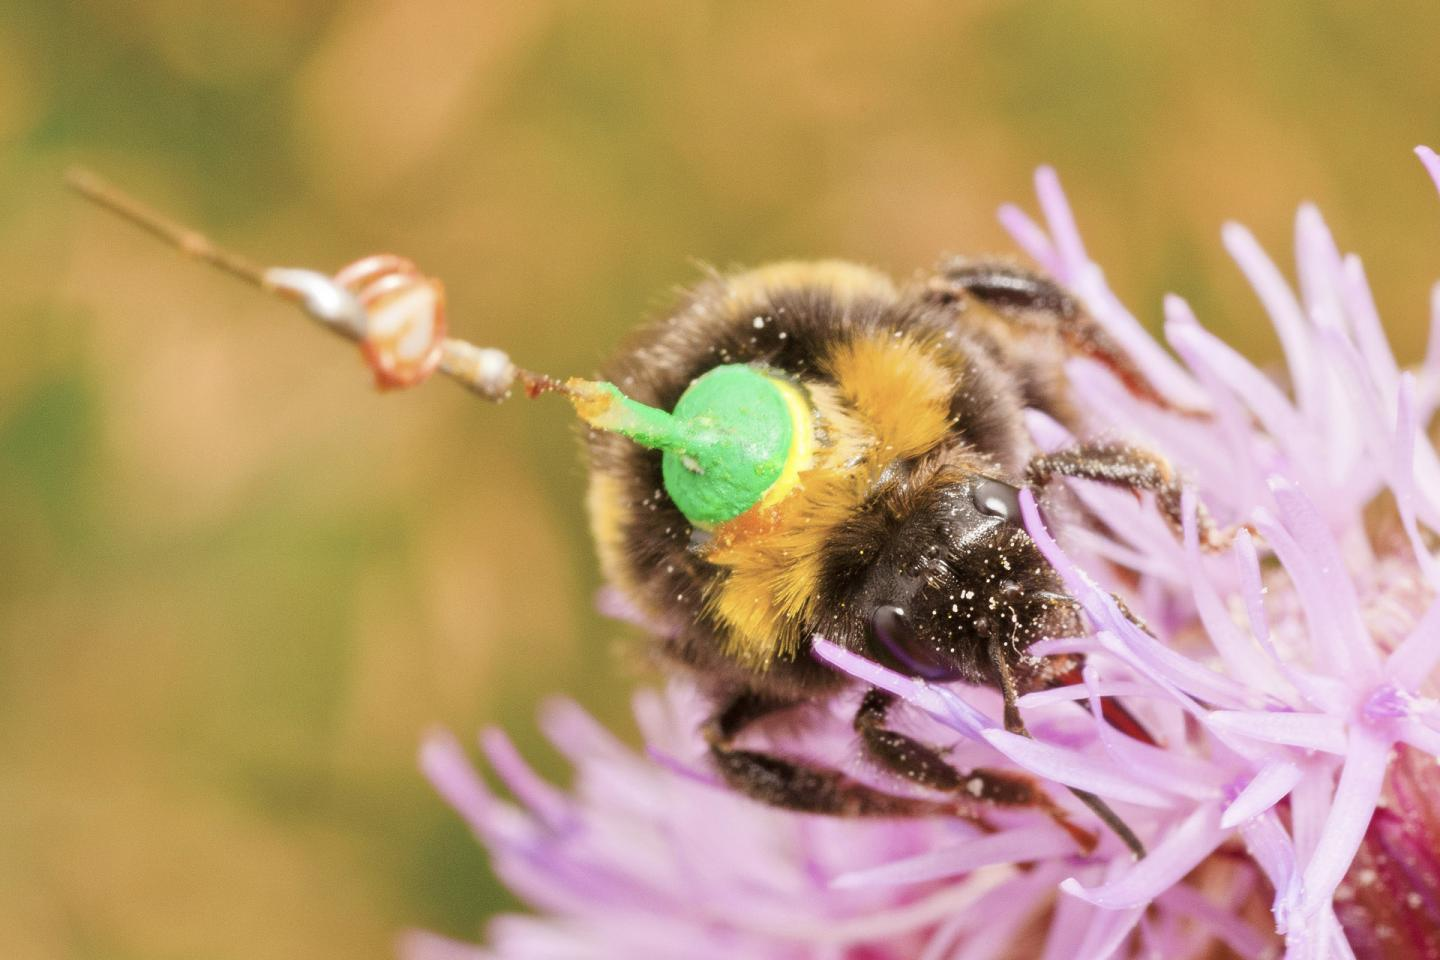 A Bumblebee Feeds on a Thistle (1 of 2)